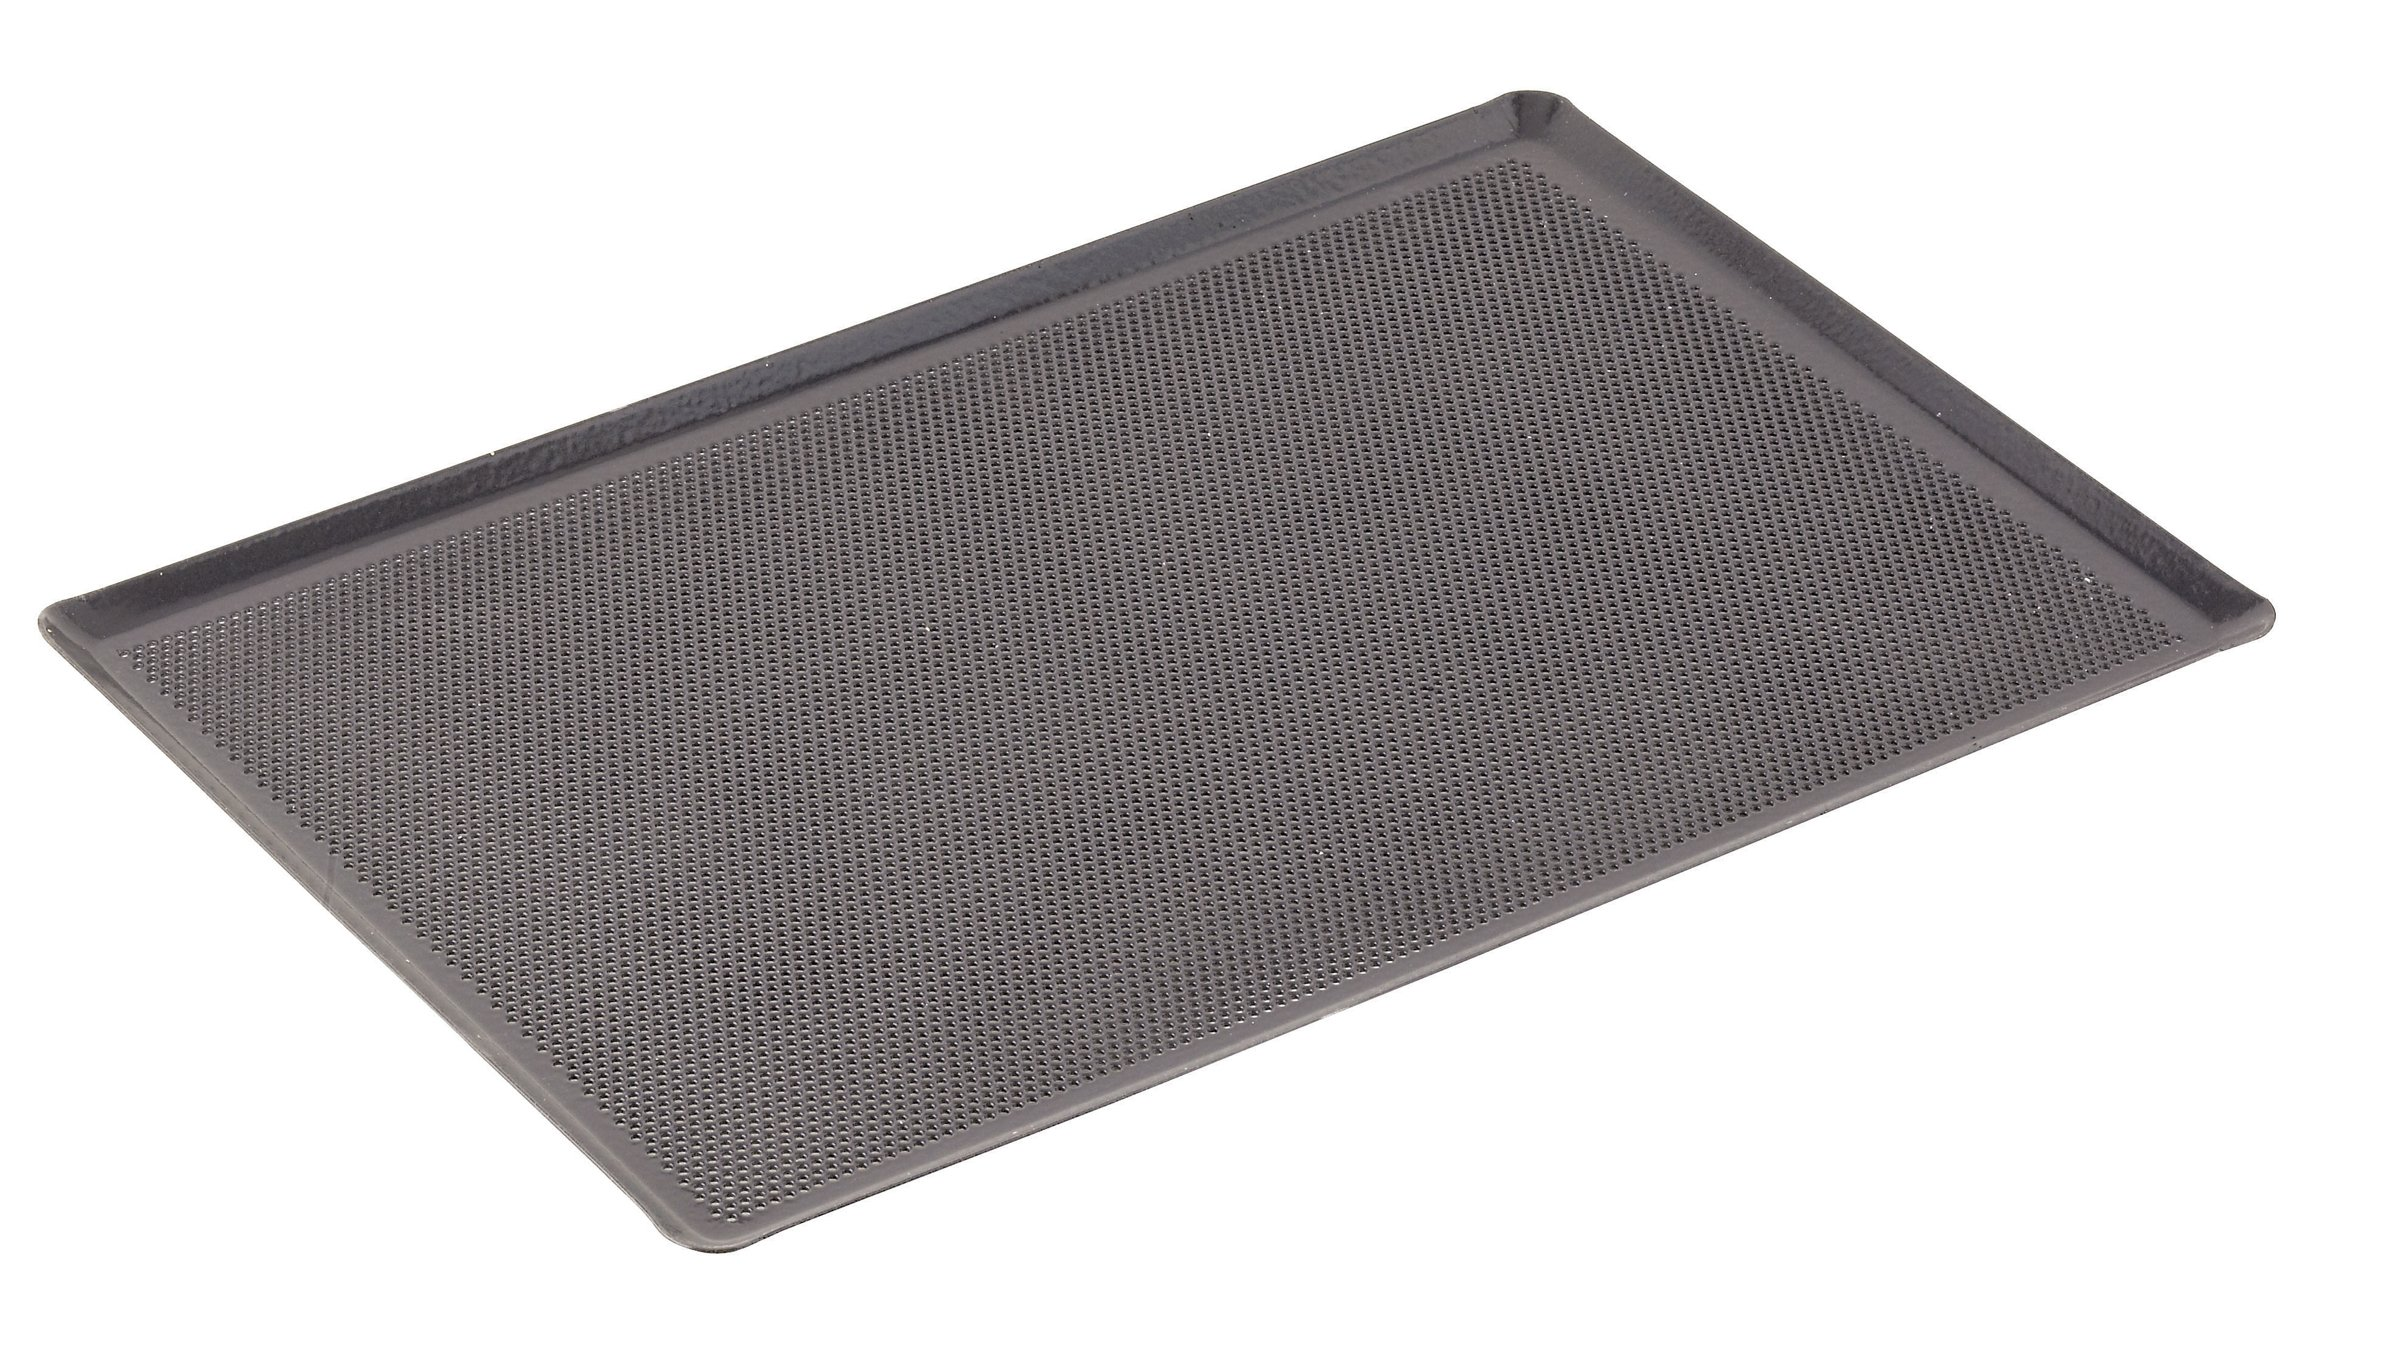 Paderno World Cuisine 25 1/2 Inch by 20 7/8 Inch Perforated Silicone Coated Baking Sheet